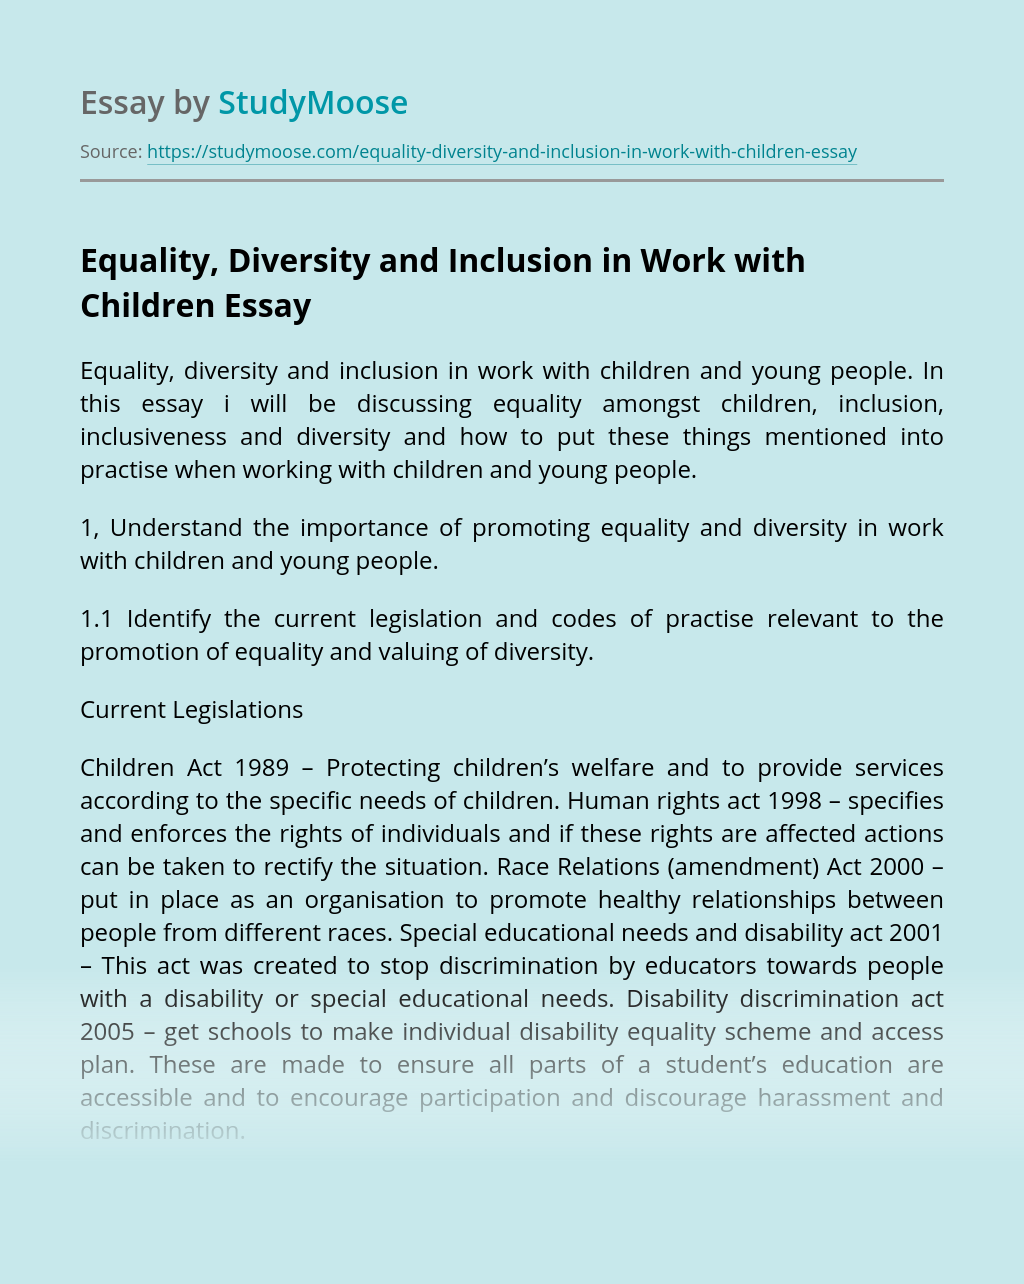 Equality, Diversity and Inclusion in Work with Children